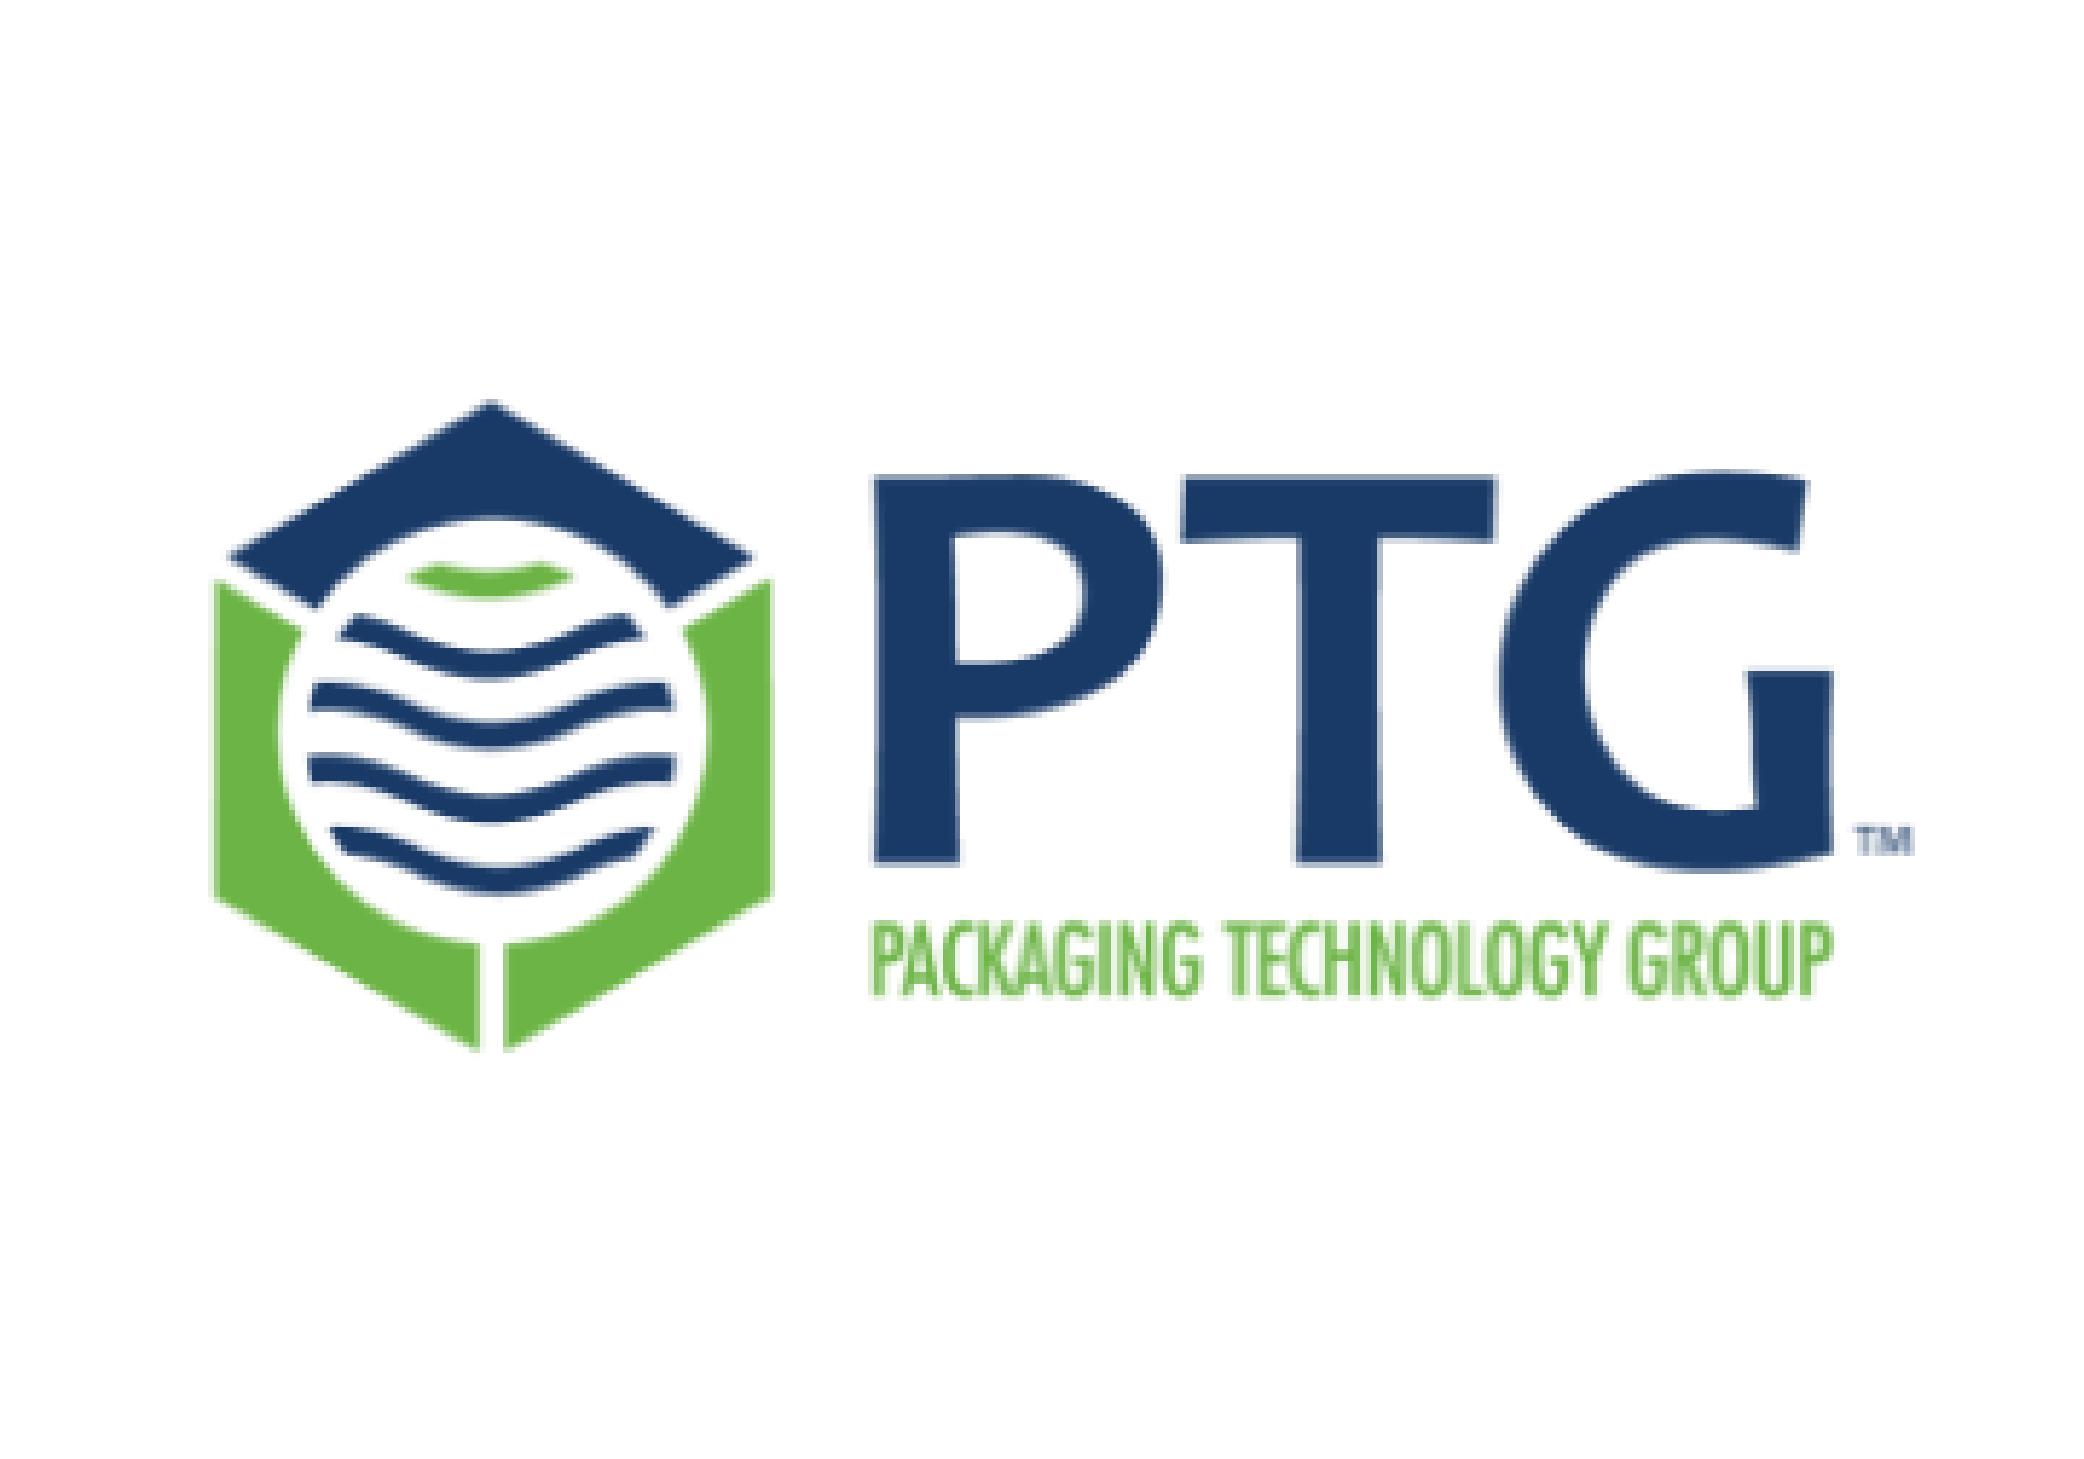 Packaging Technology Group